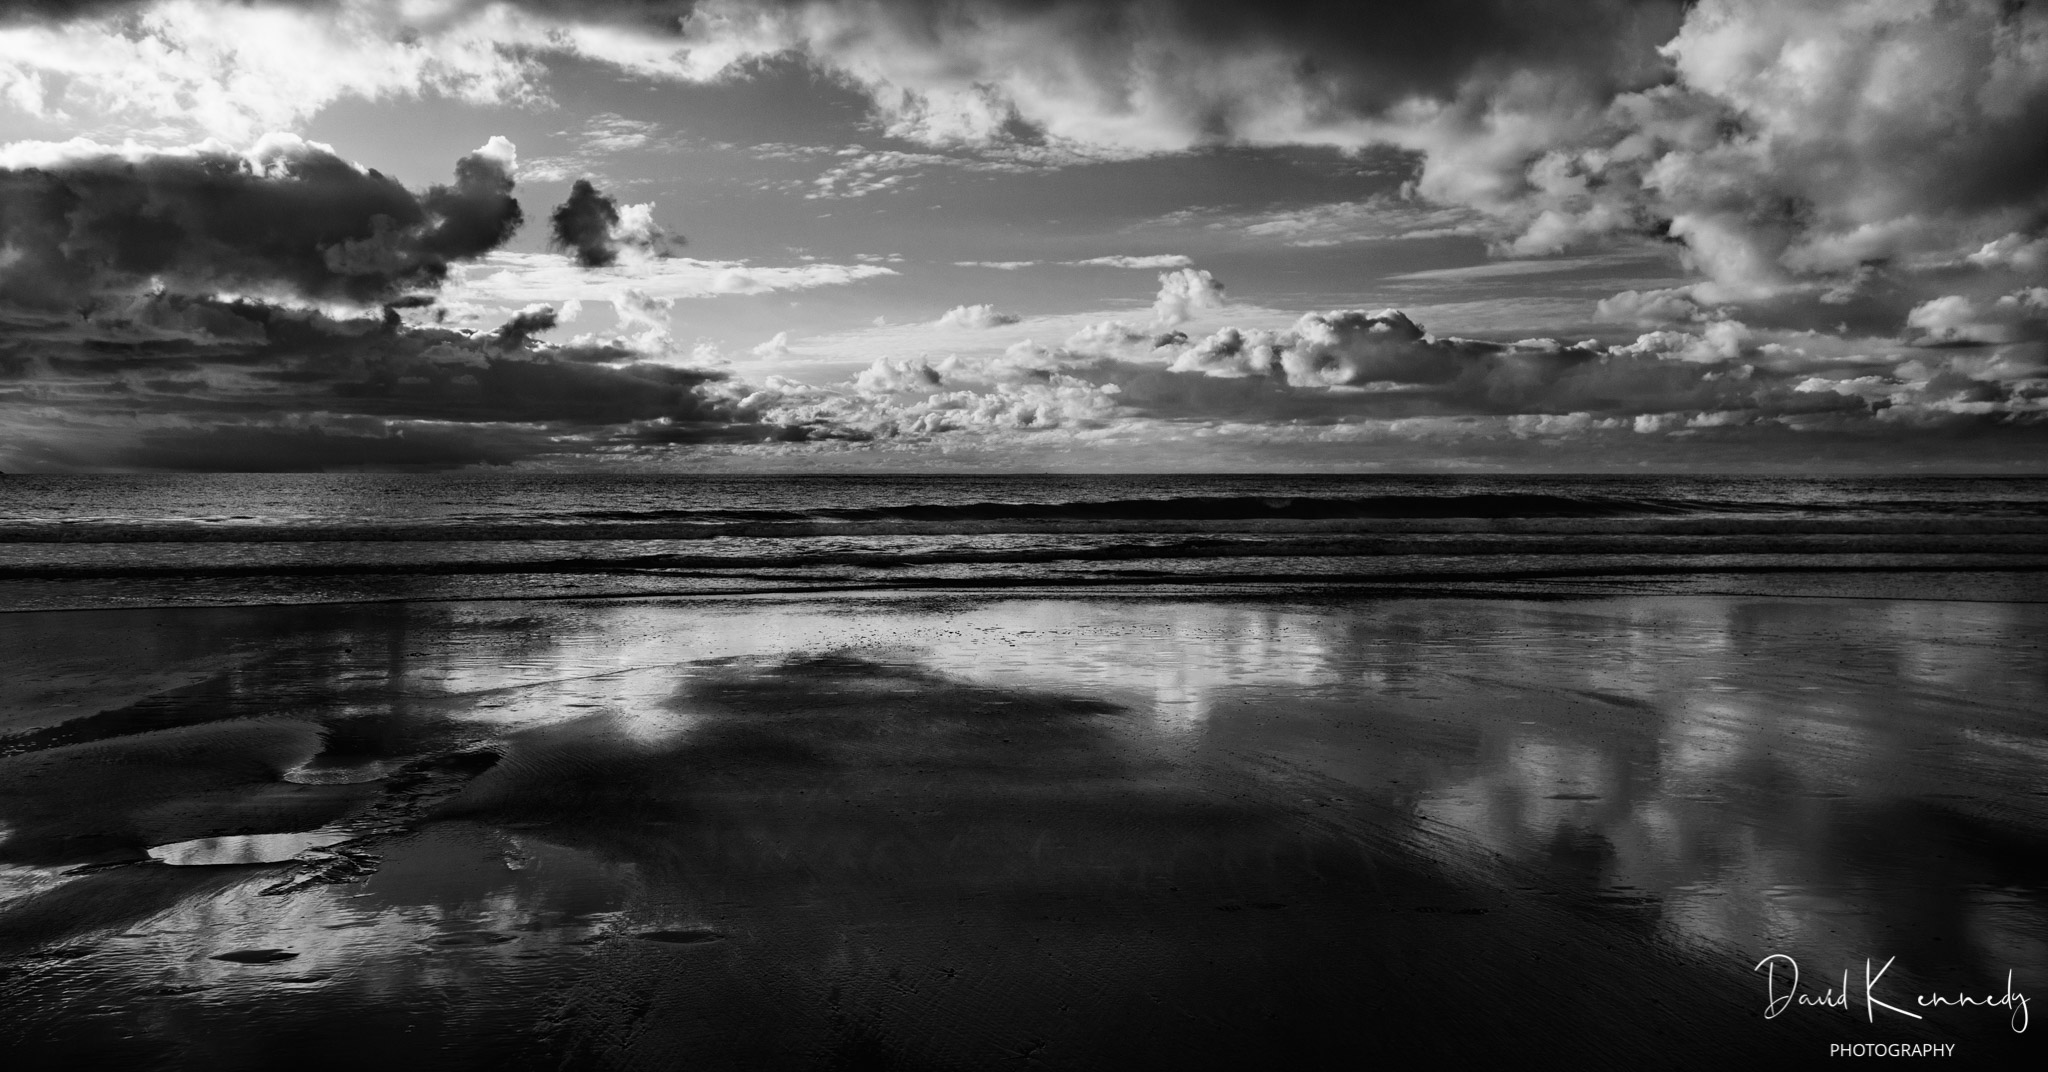 Looking out towards the shoreline with a dramatic sky reflected on the wet beach in the foreground